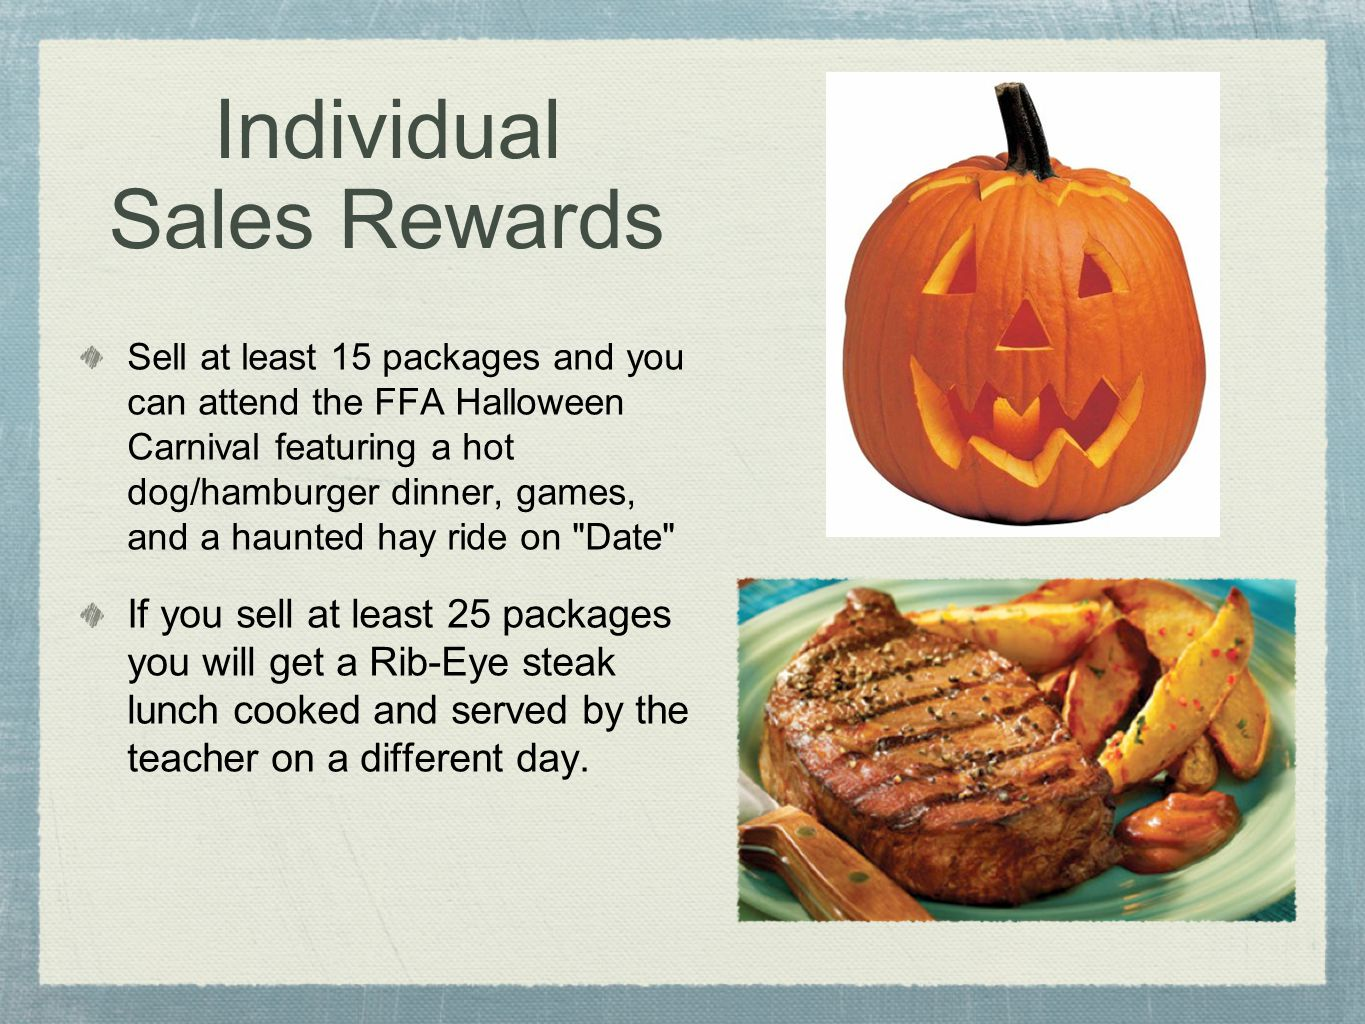 Individual Sales Rewards Sell at least 15 packages and you can attend the FFA Halloween Carnival featuring a hot dog/hamburger dinner, games, and a haunted hay ride on Date If you sell at least 25 packages you will get a Rib-Eye steak lunch cooked and served by the teacher on a different day.